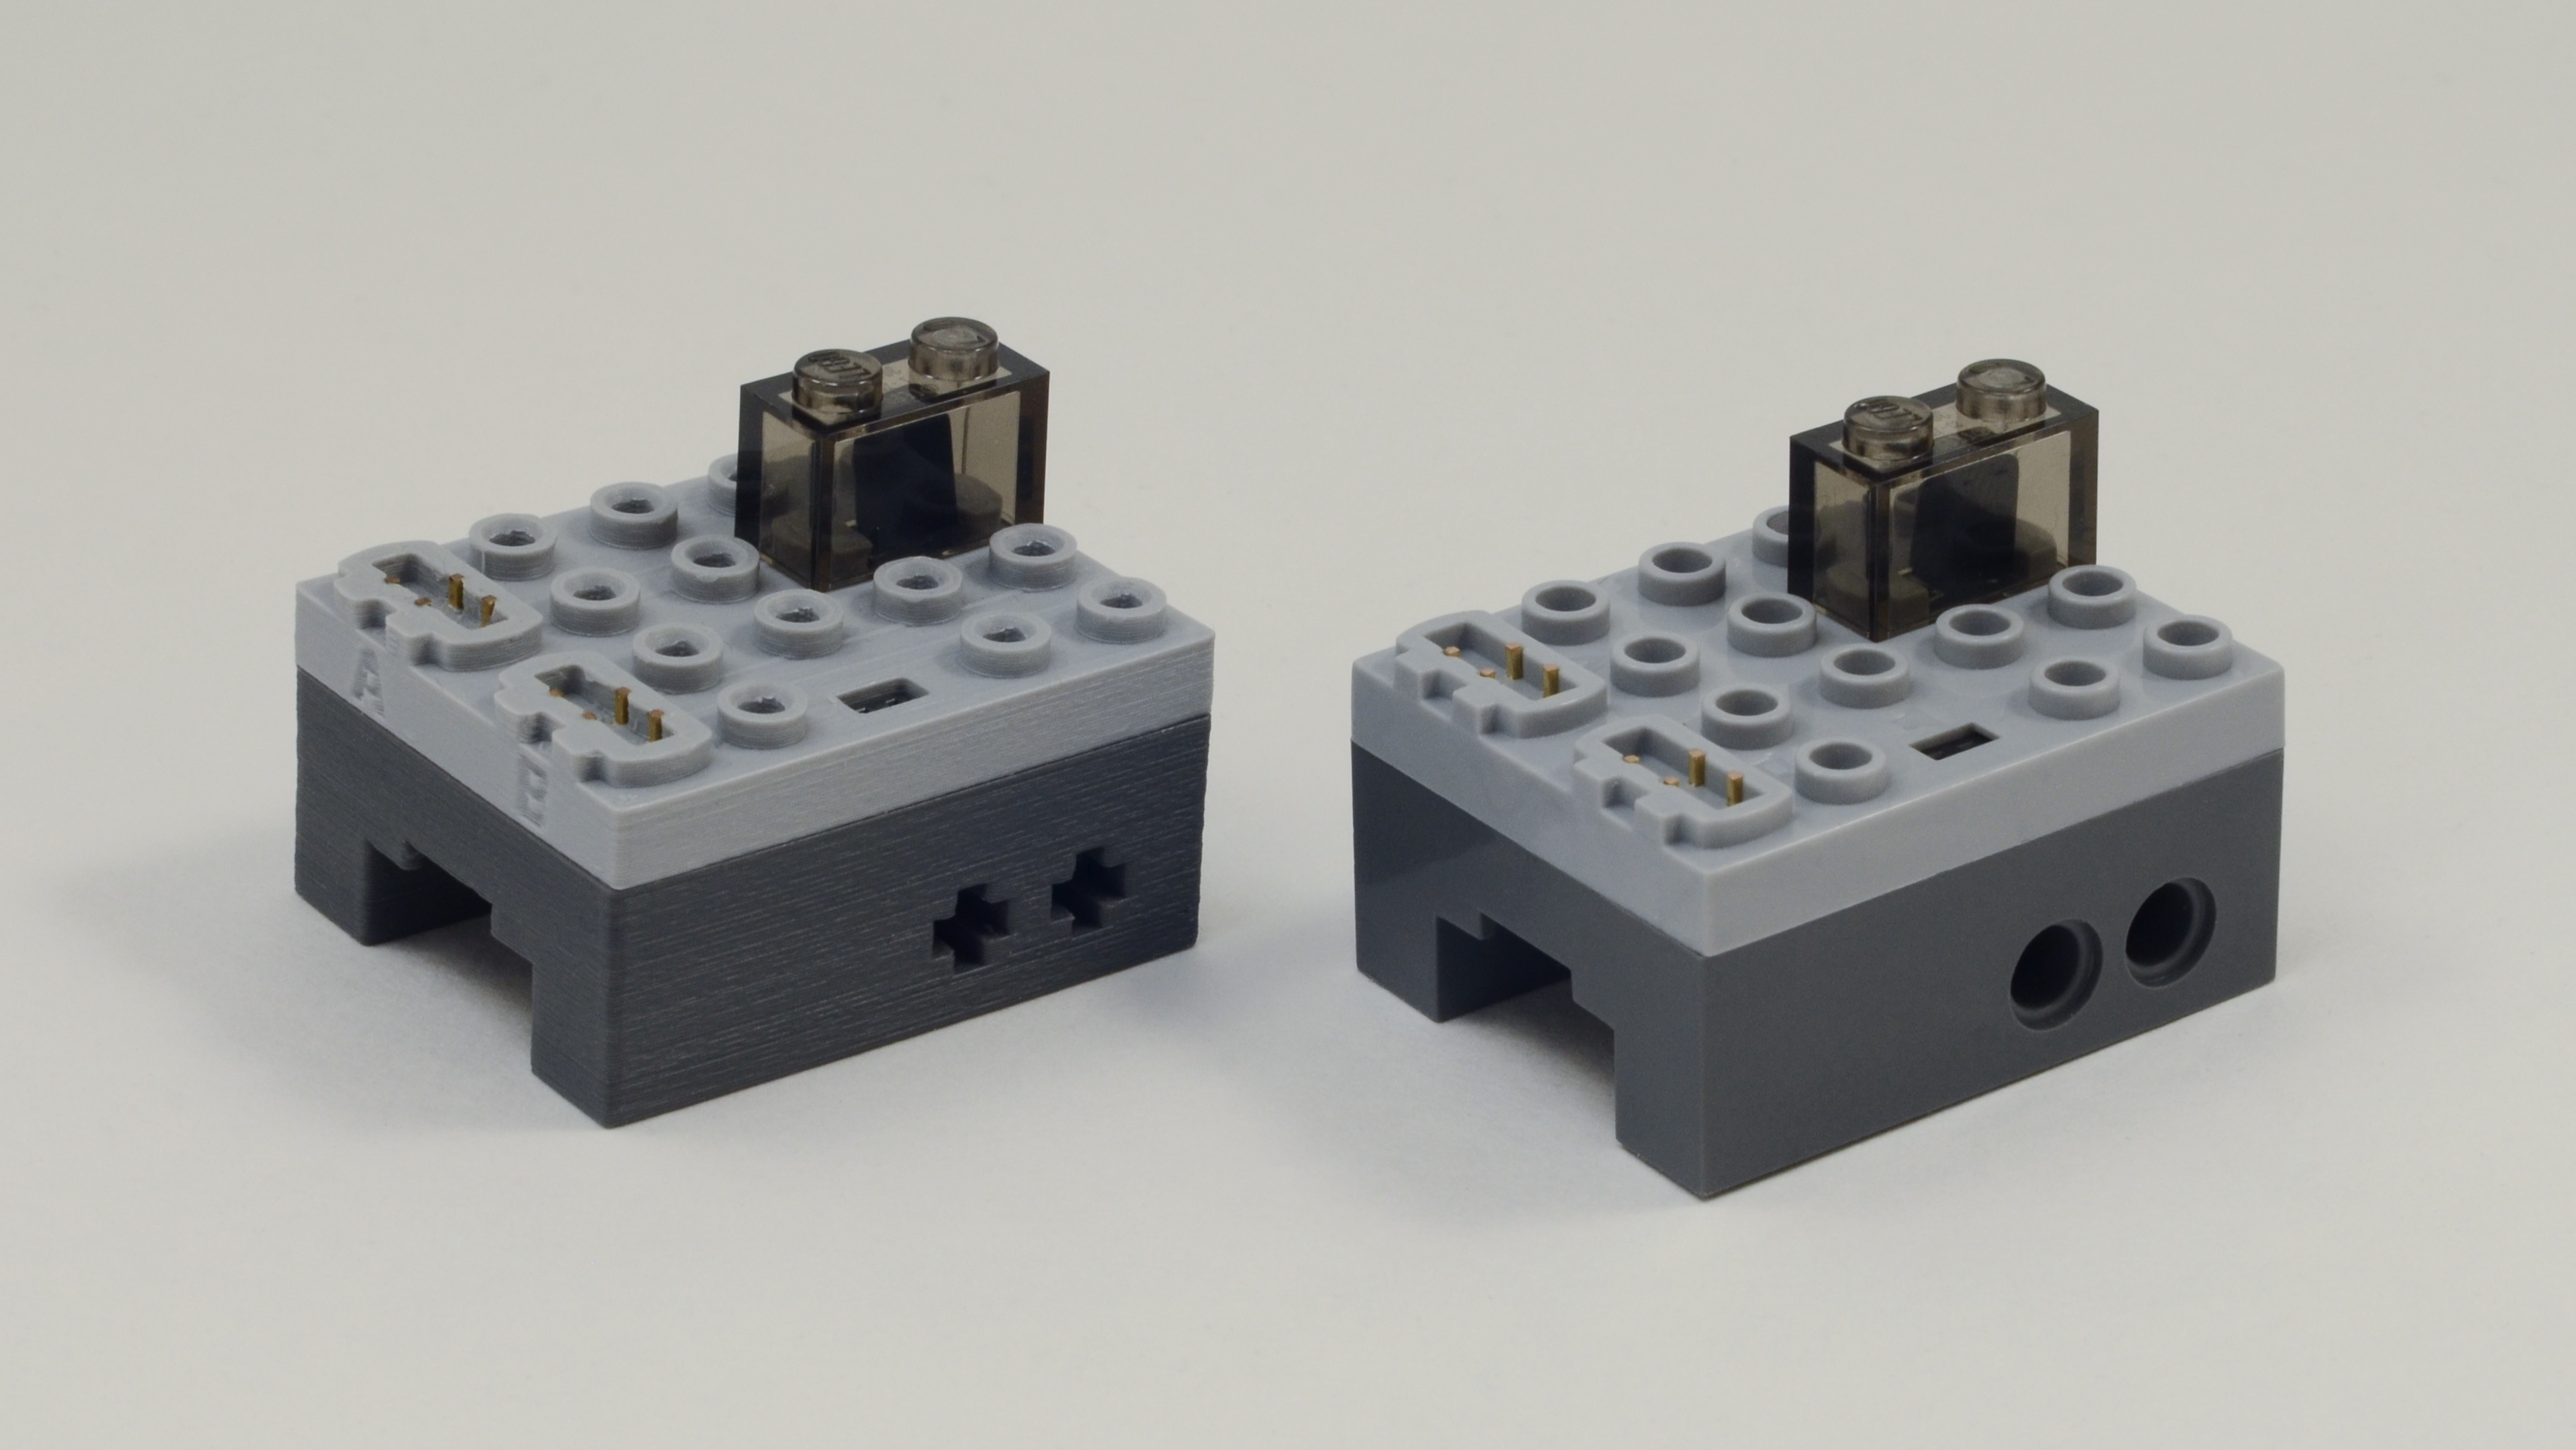 1st generation 3D printed PFx Brick (left) new 2nd generation PFx Brick (right) injected molded in ABS